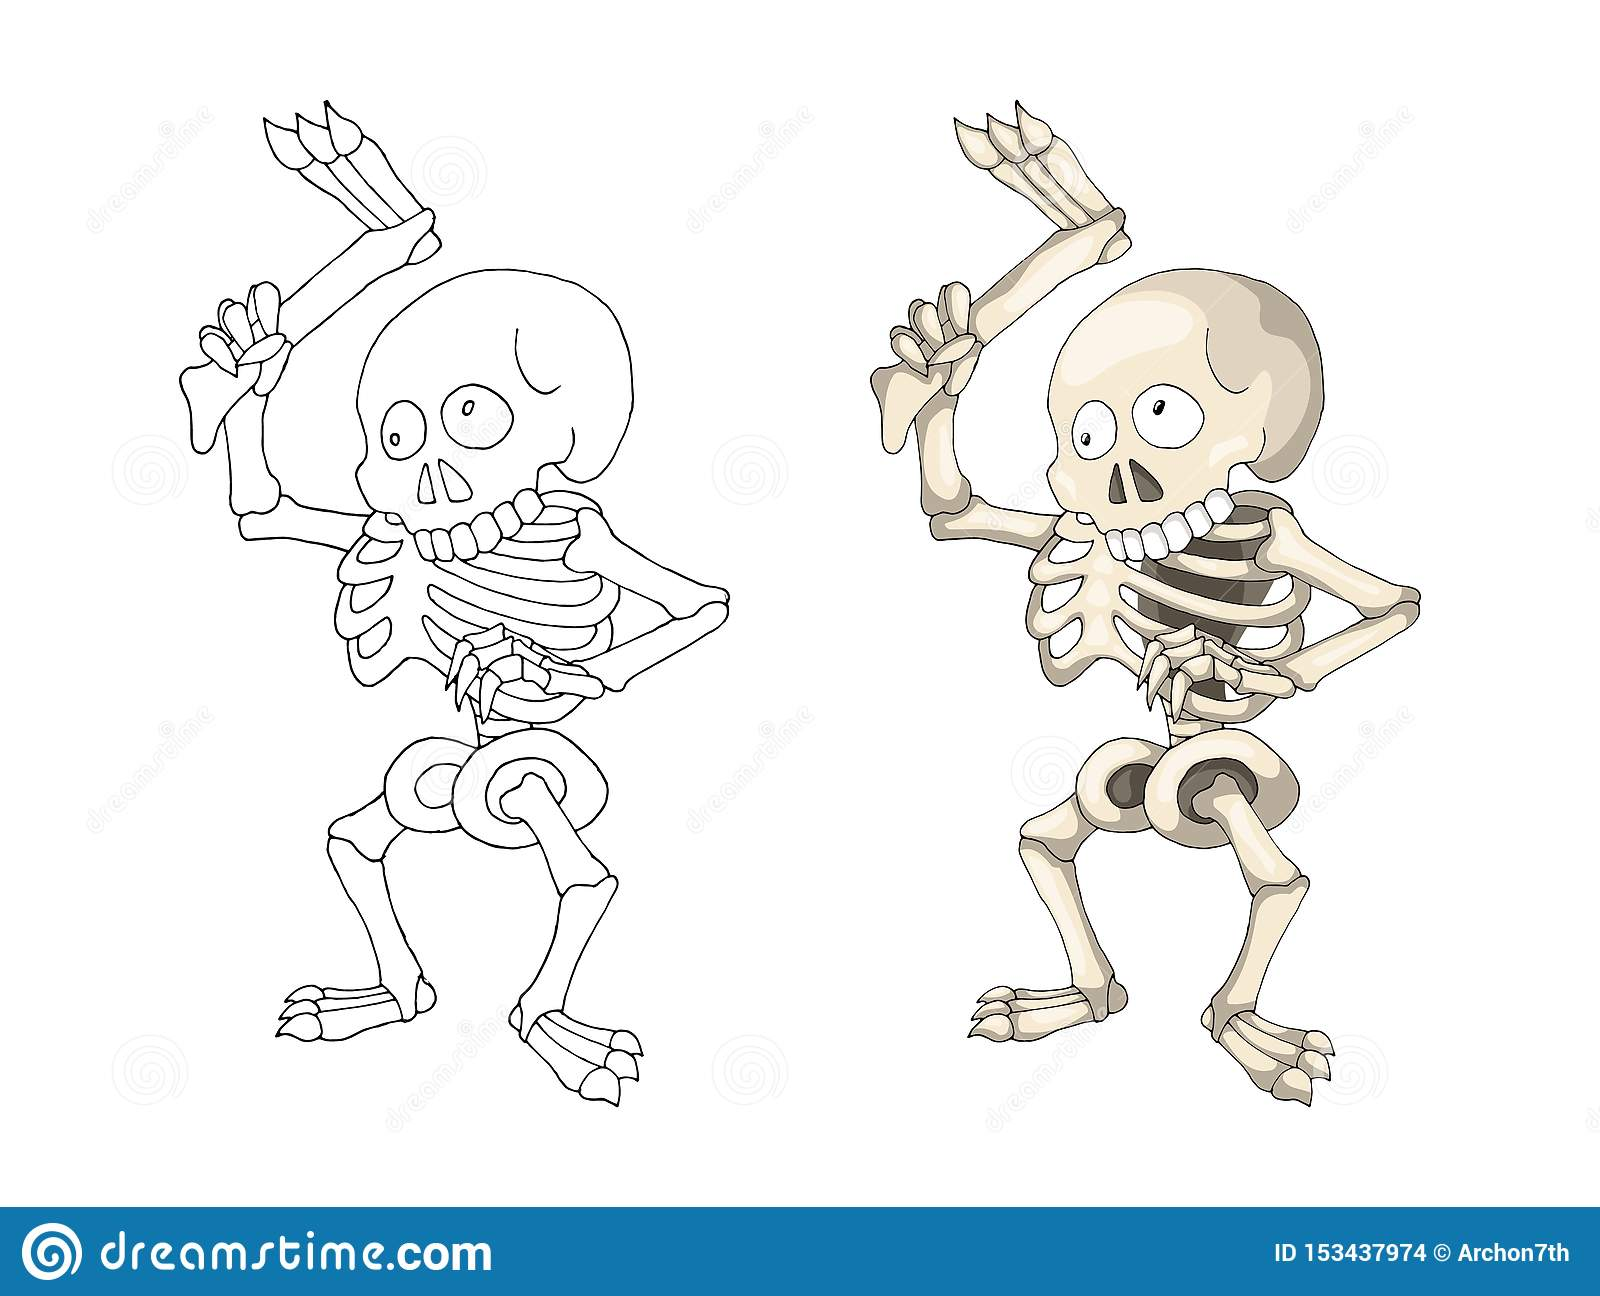 Human Skeleton Standing With Leg, Cartoon Character Coloring ...